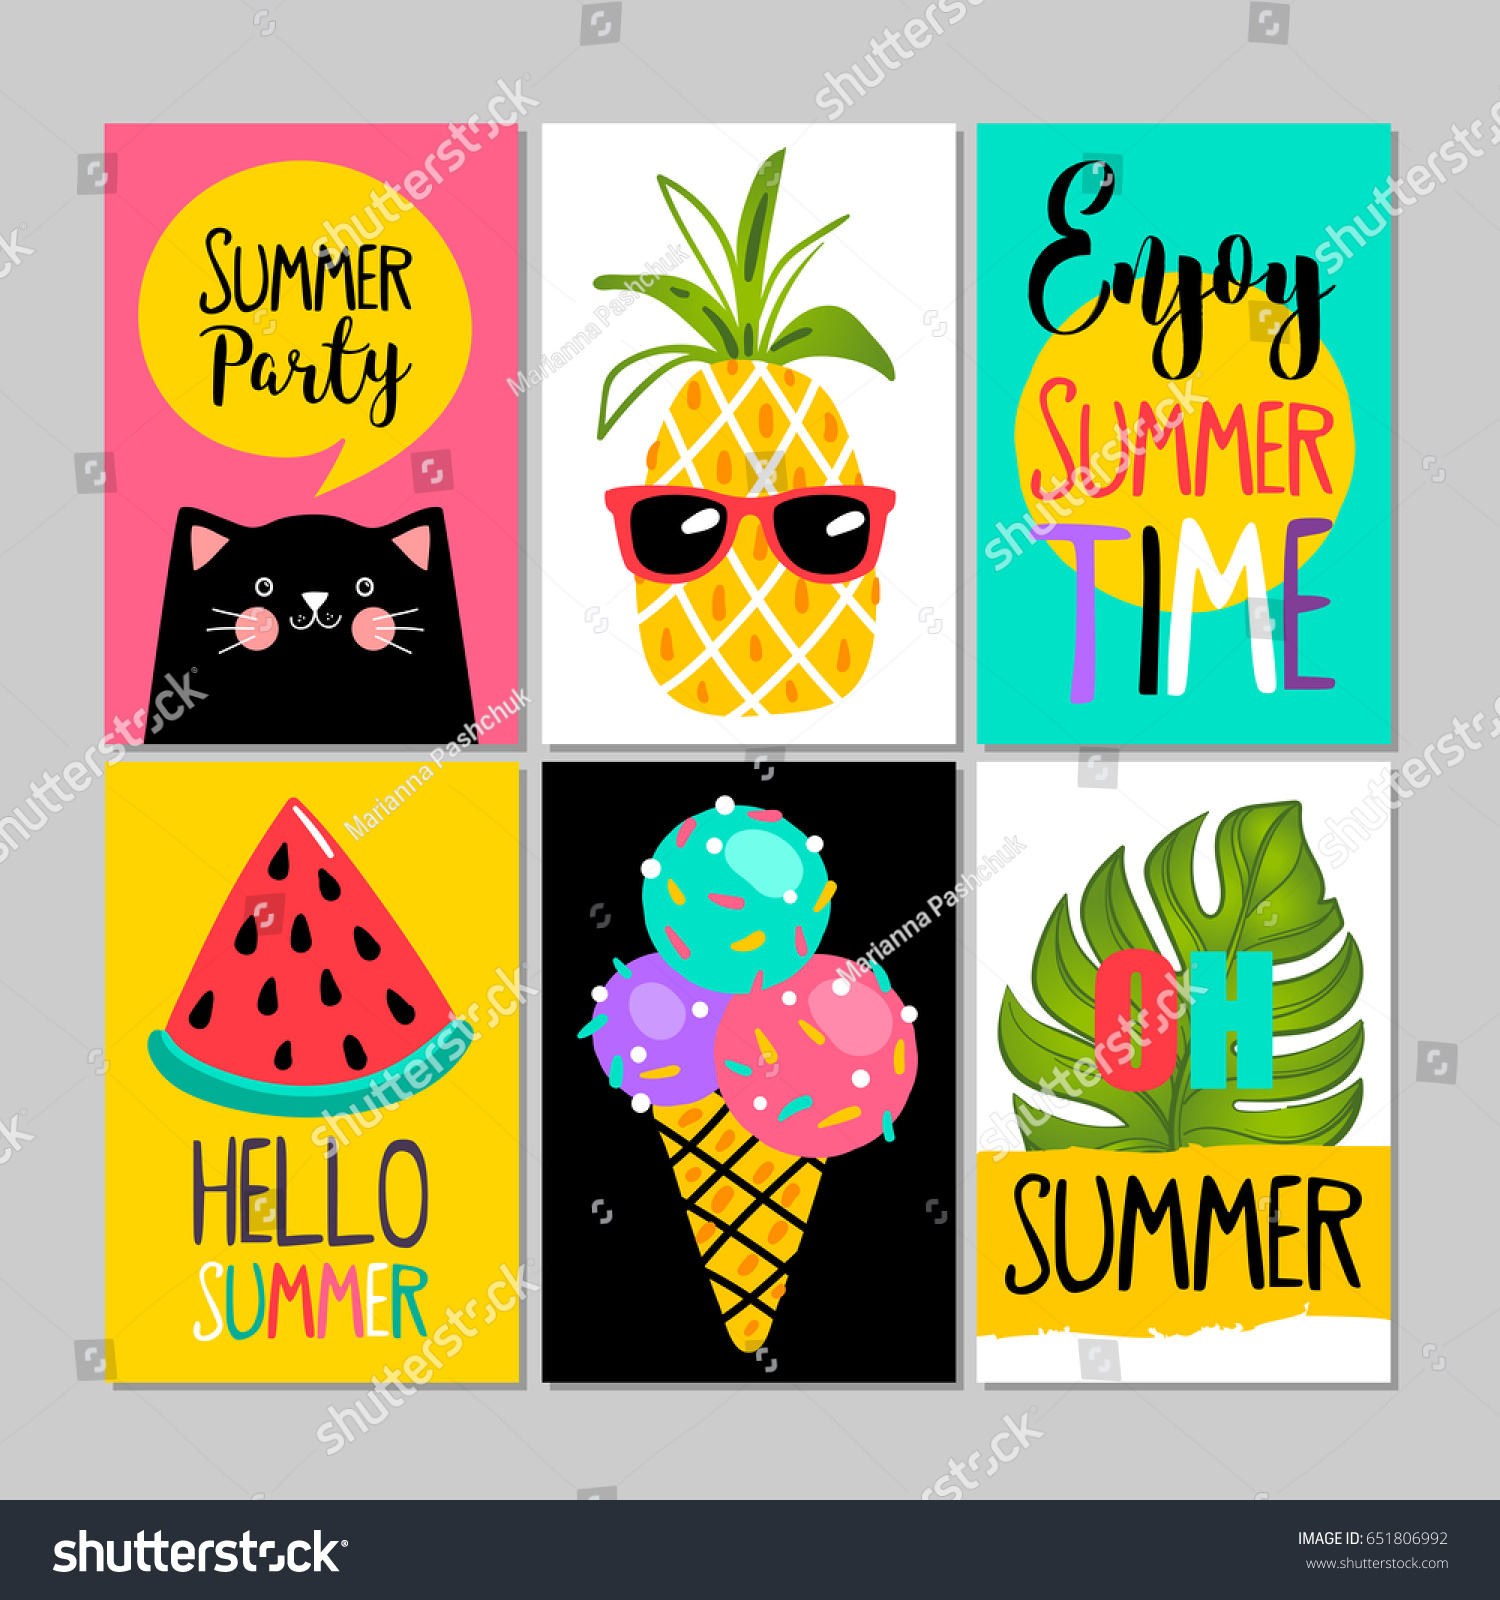 Set summer cards posters greeting card stock vector 651806992 set of summer cards posters greeting card vacation flyer vector illustrations kristyandbryce Image collections